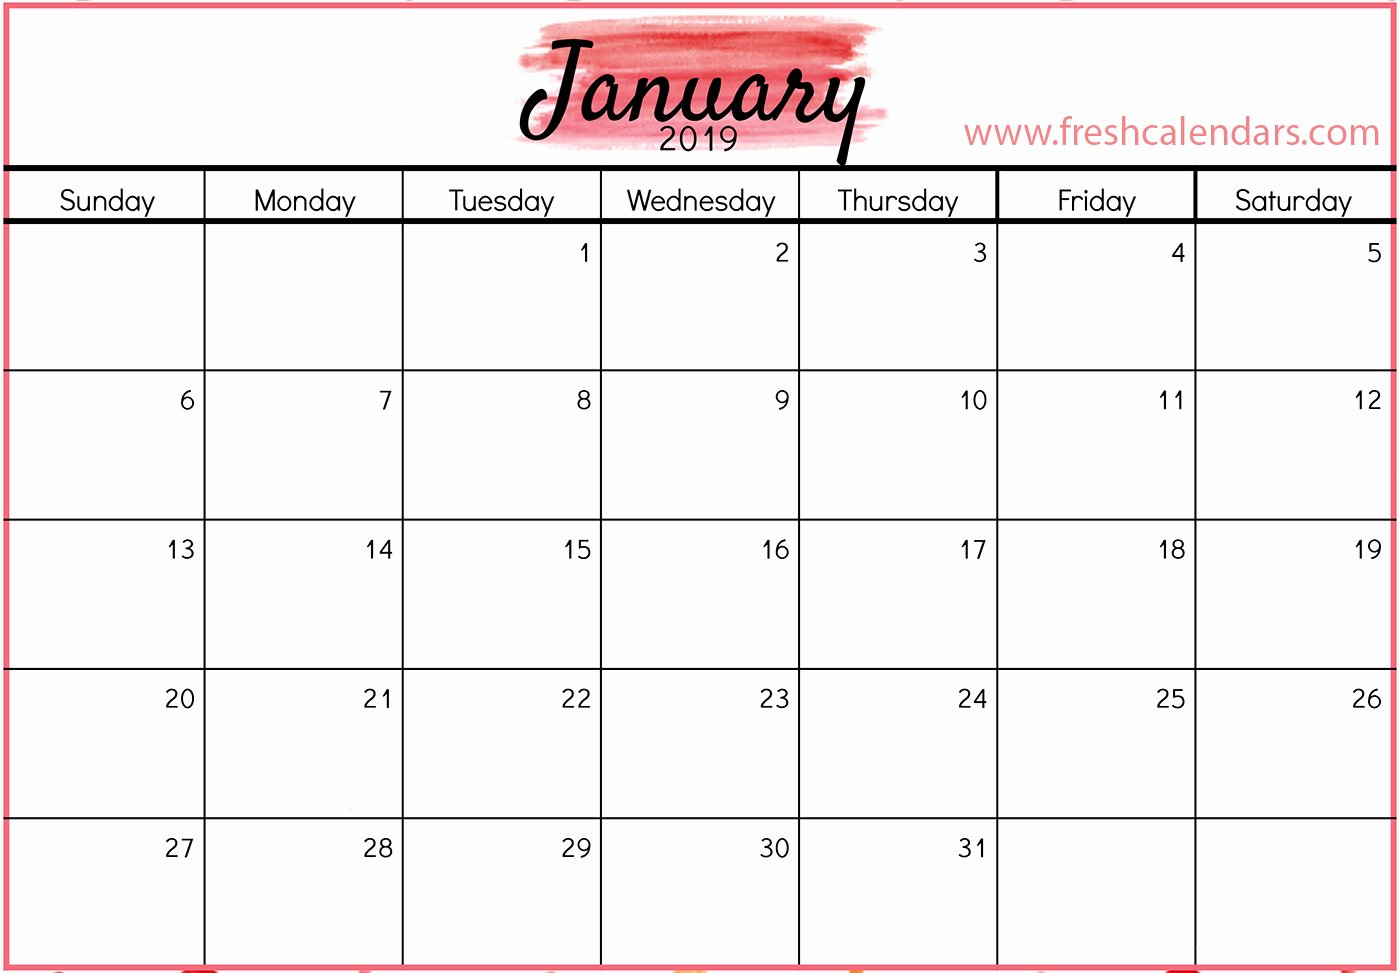 Monthly Calendar Template 2019 Elegant January 2019 Calendar Printable Fresh Calendars